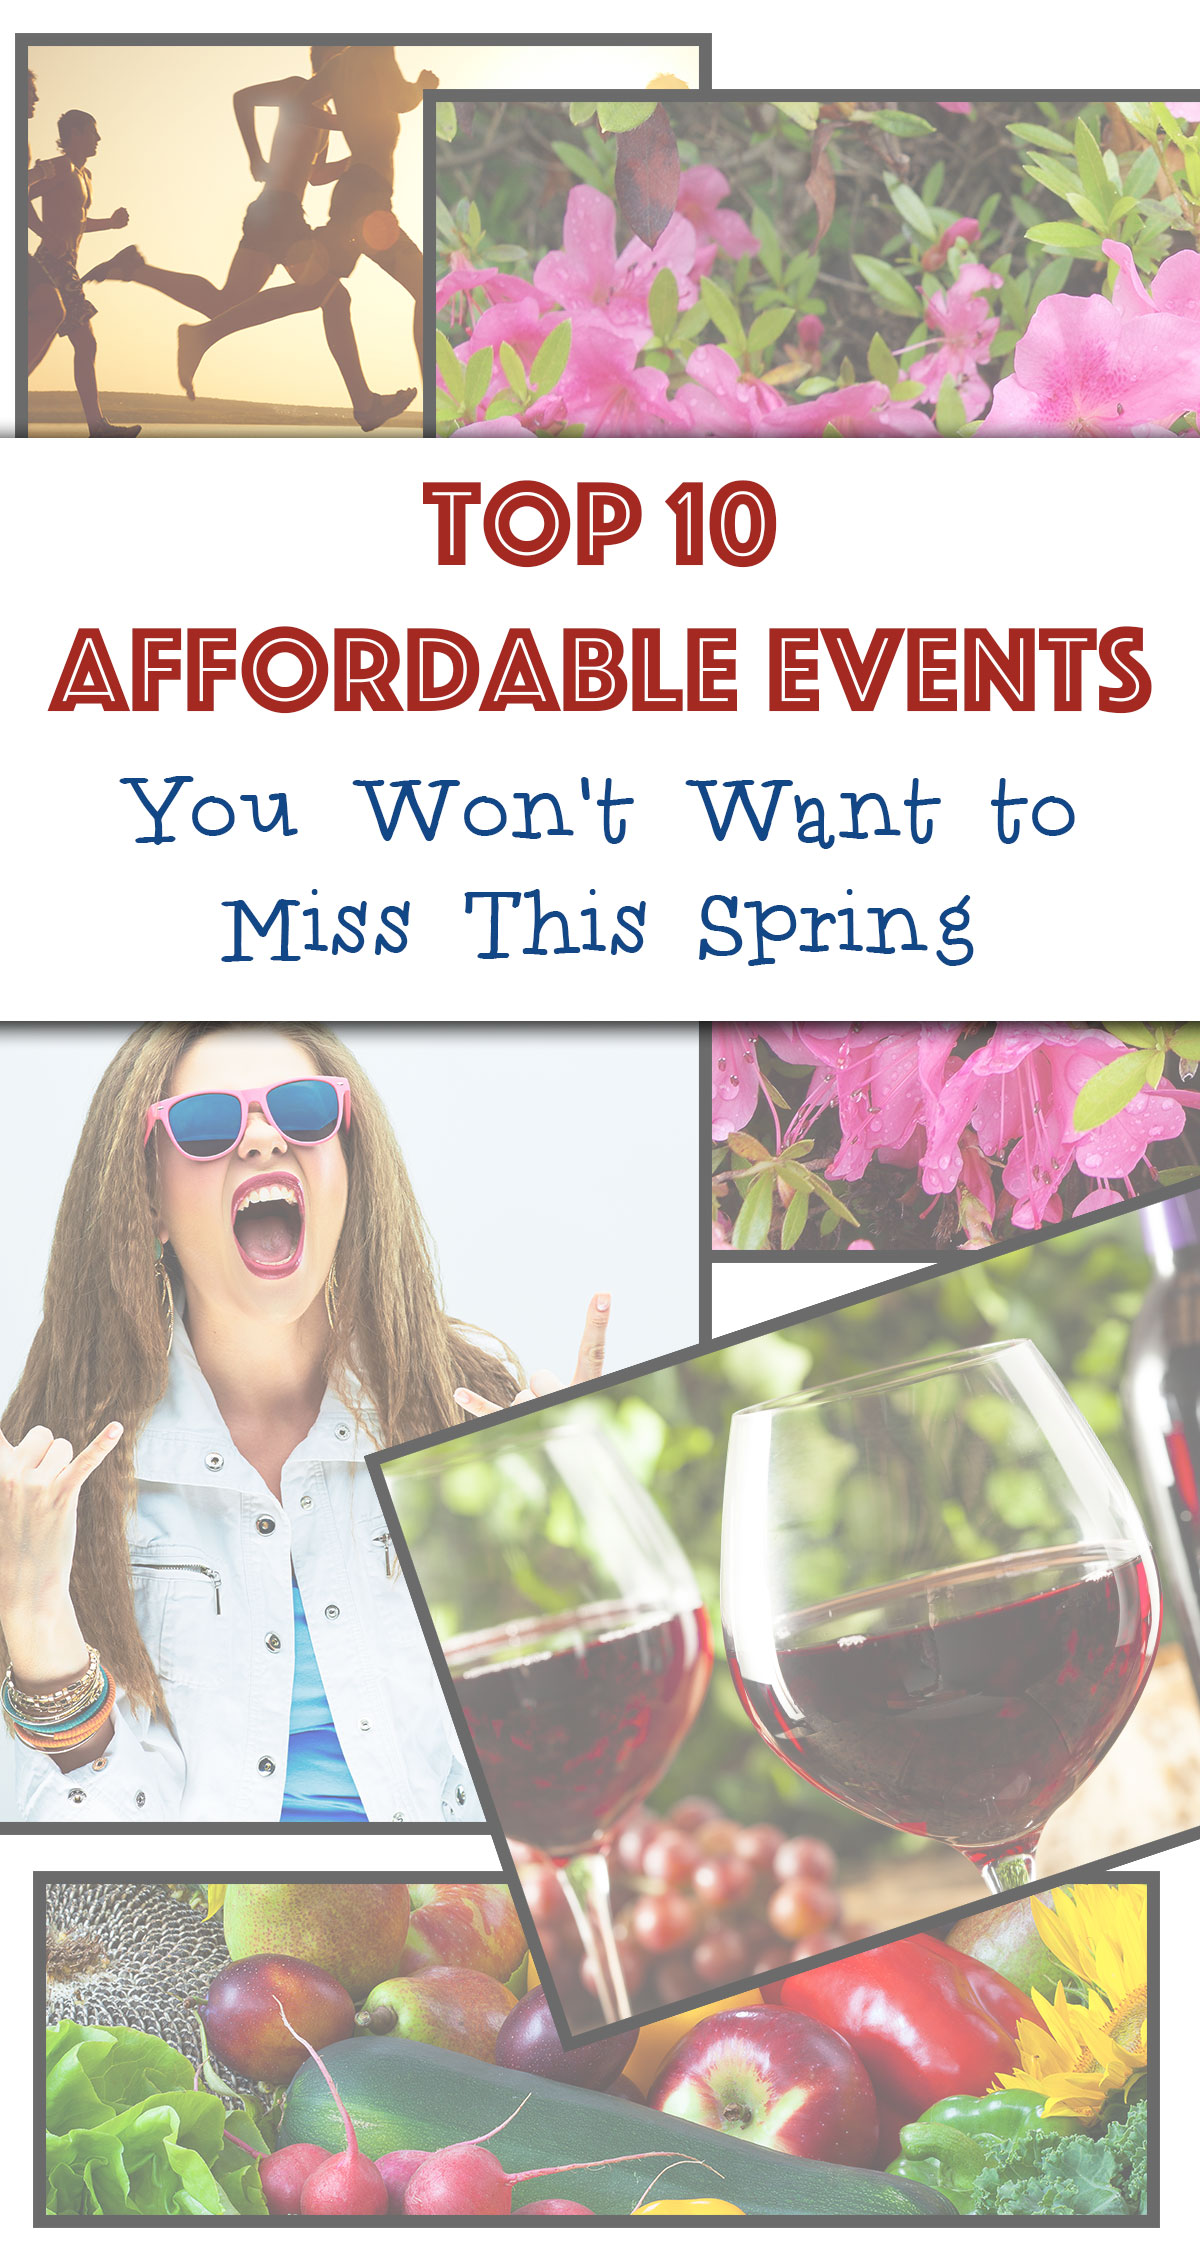 Top 10 Affordable Events You Won't Want to Miss This Spring Pin